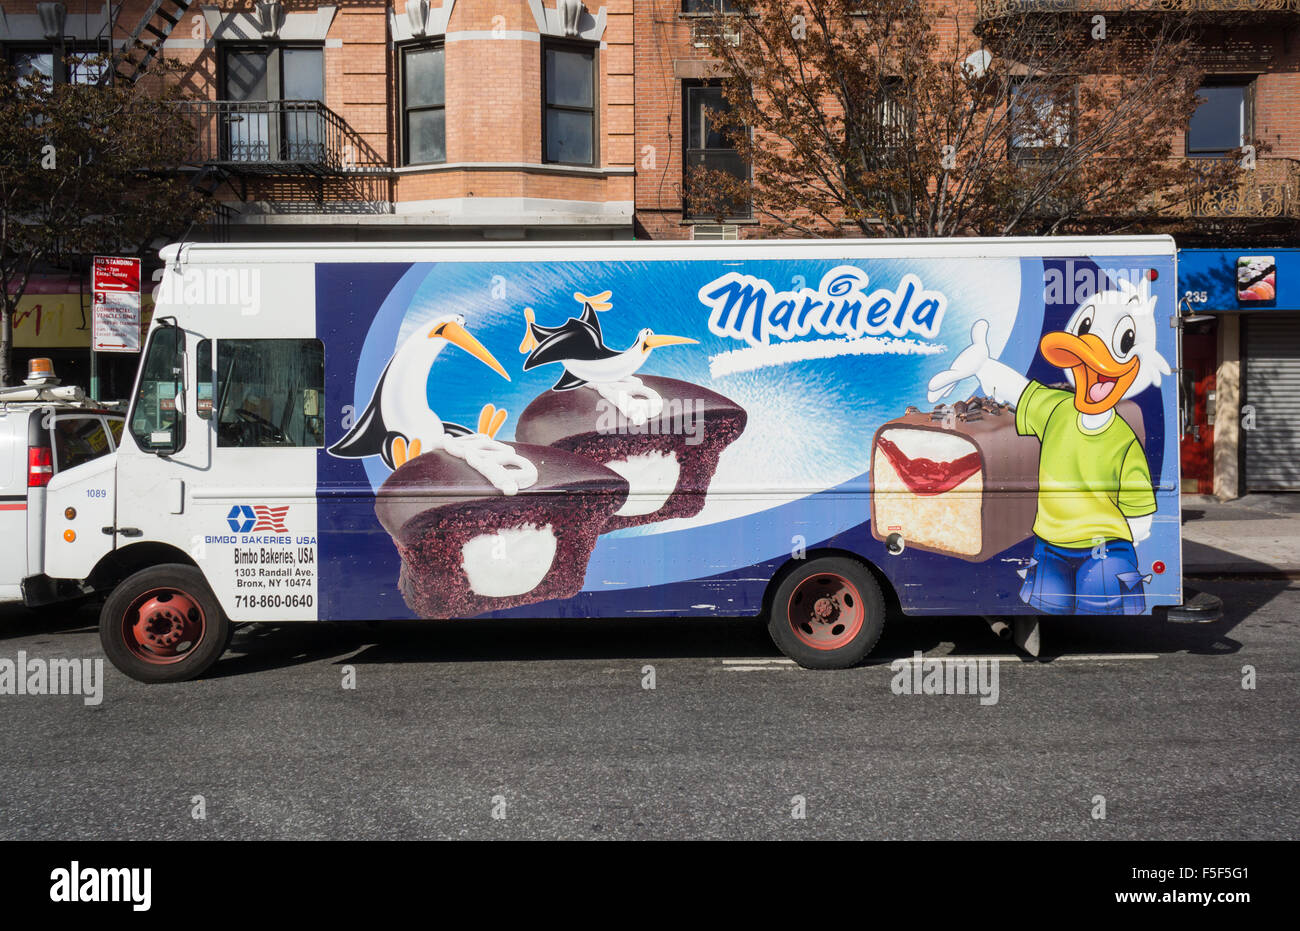 Bakery Delivery Truck Stock Photos & Bakery Delivery Truck Stock ...